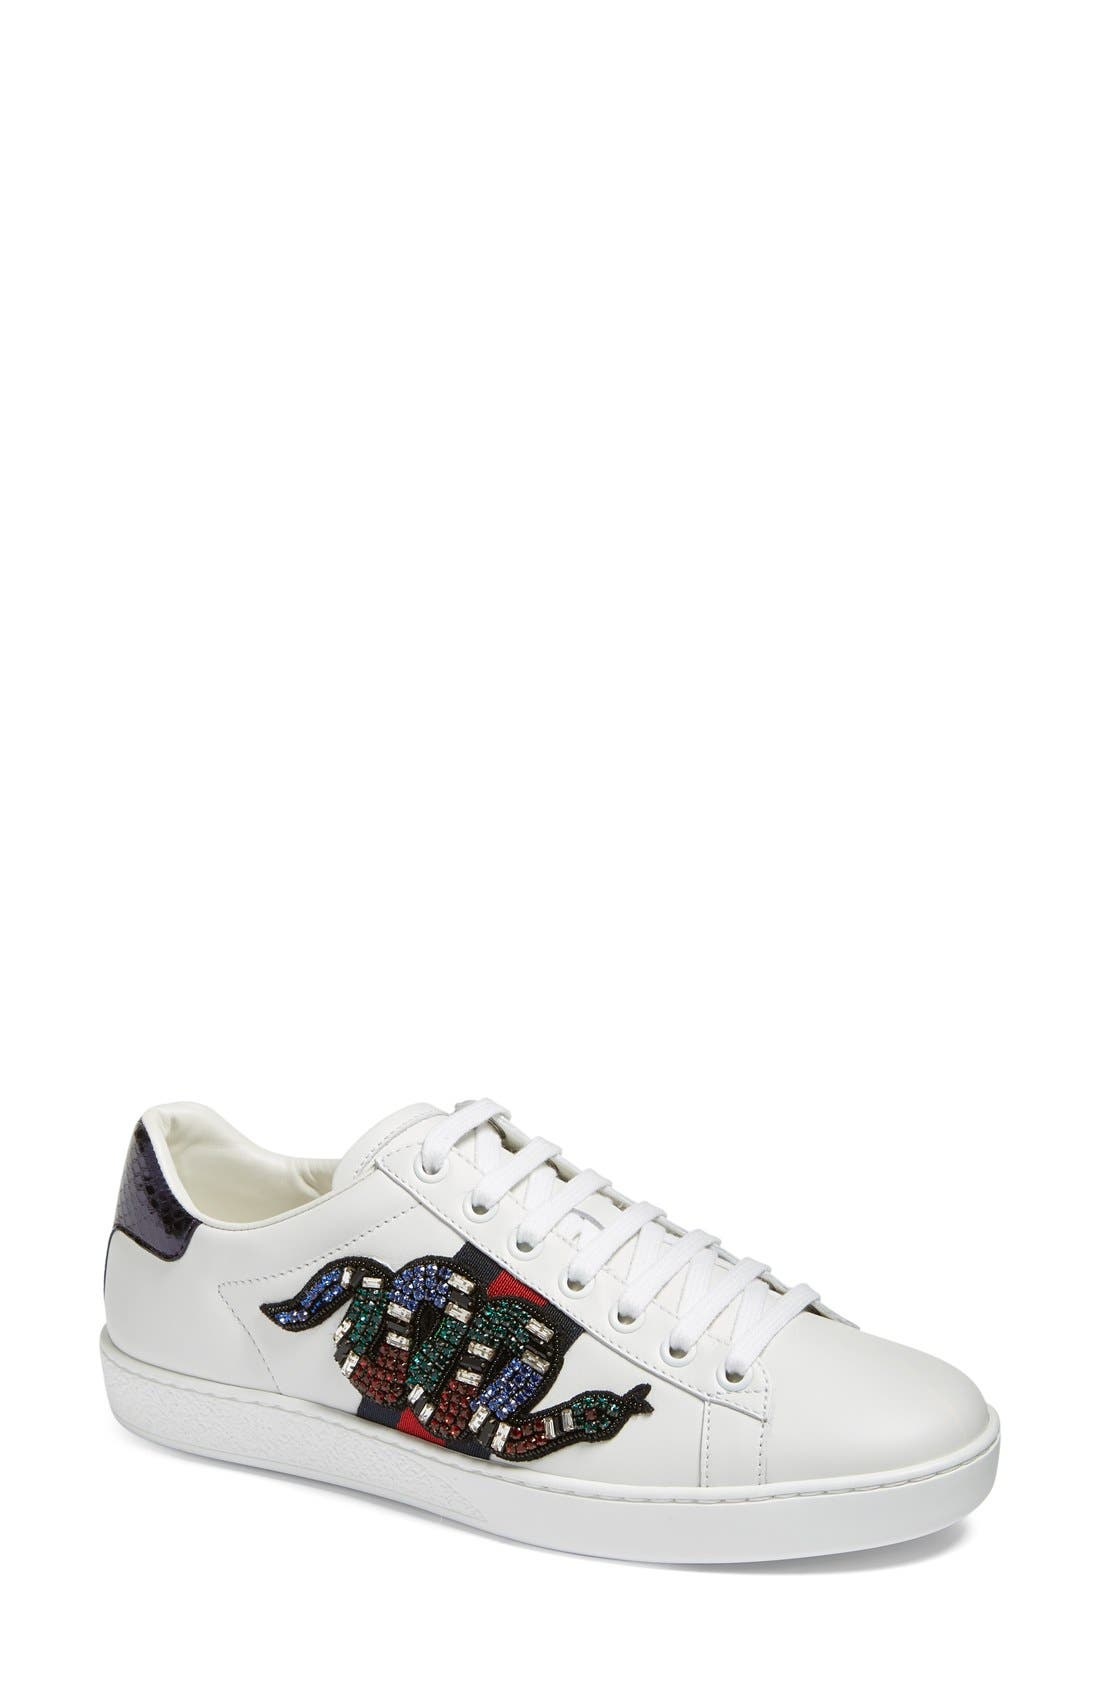 gucci tennis shoes. gucci new age snake embellished sneaker (women) tennis shoes